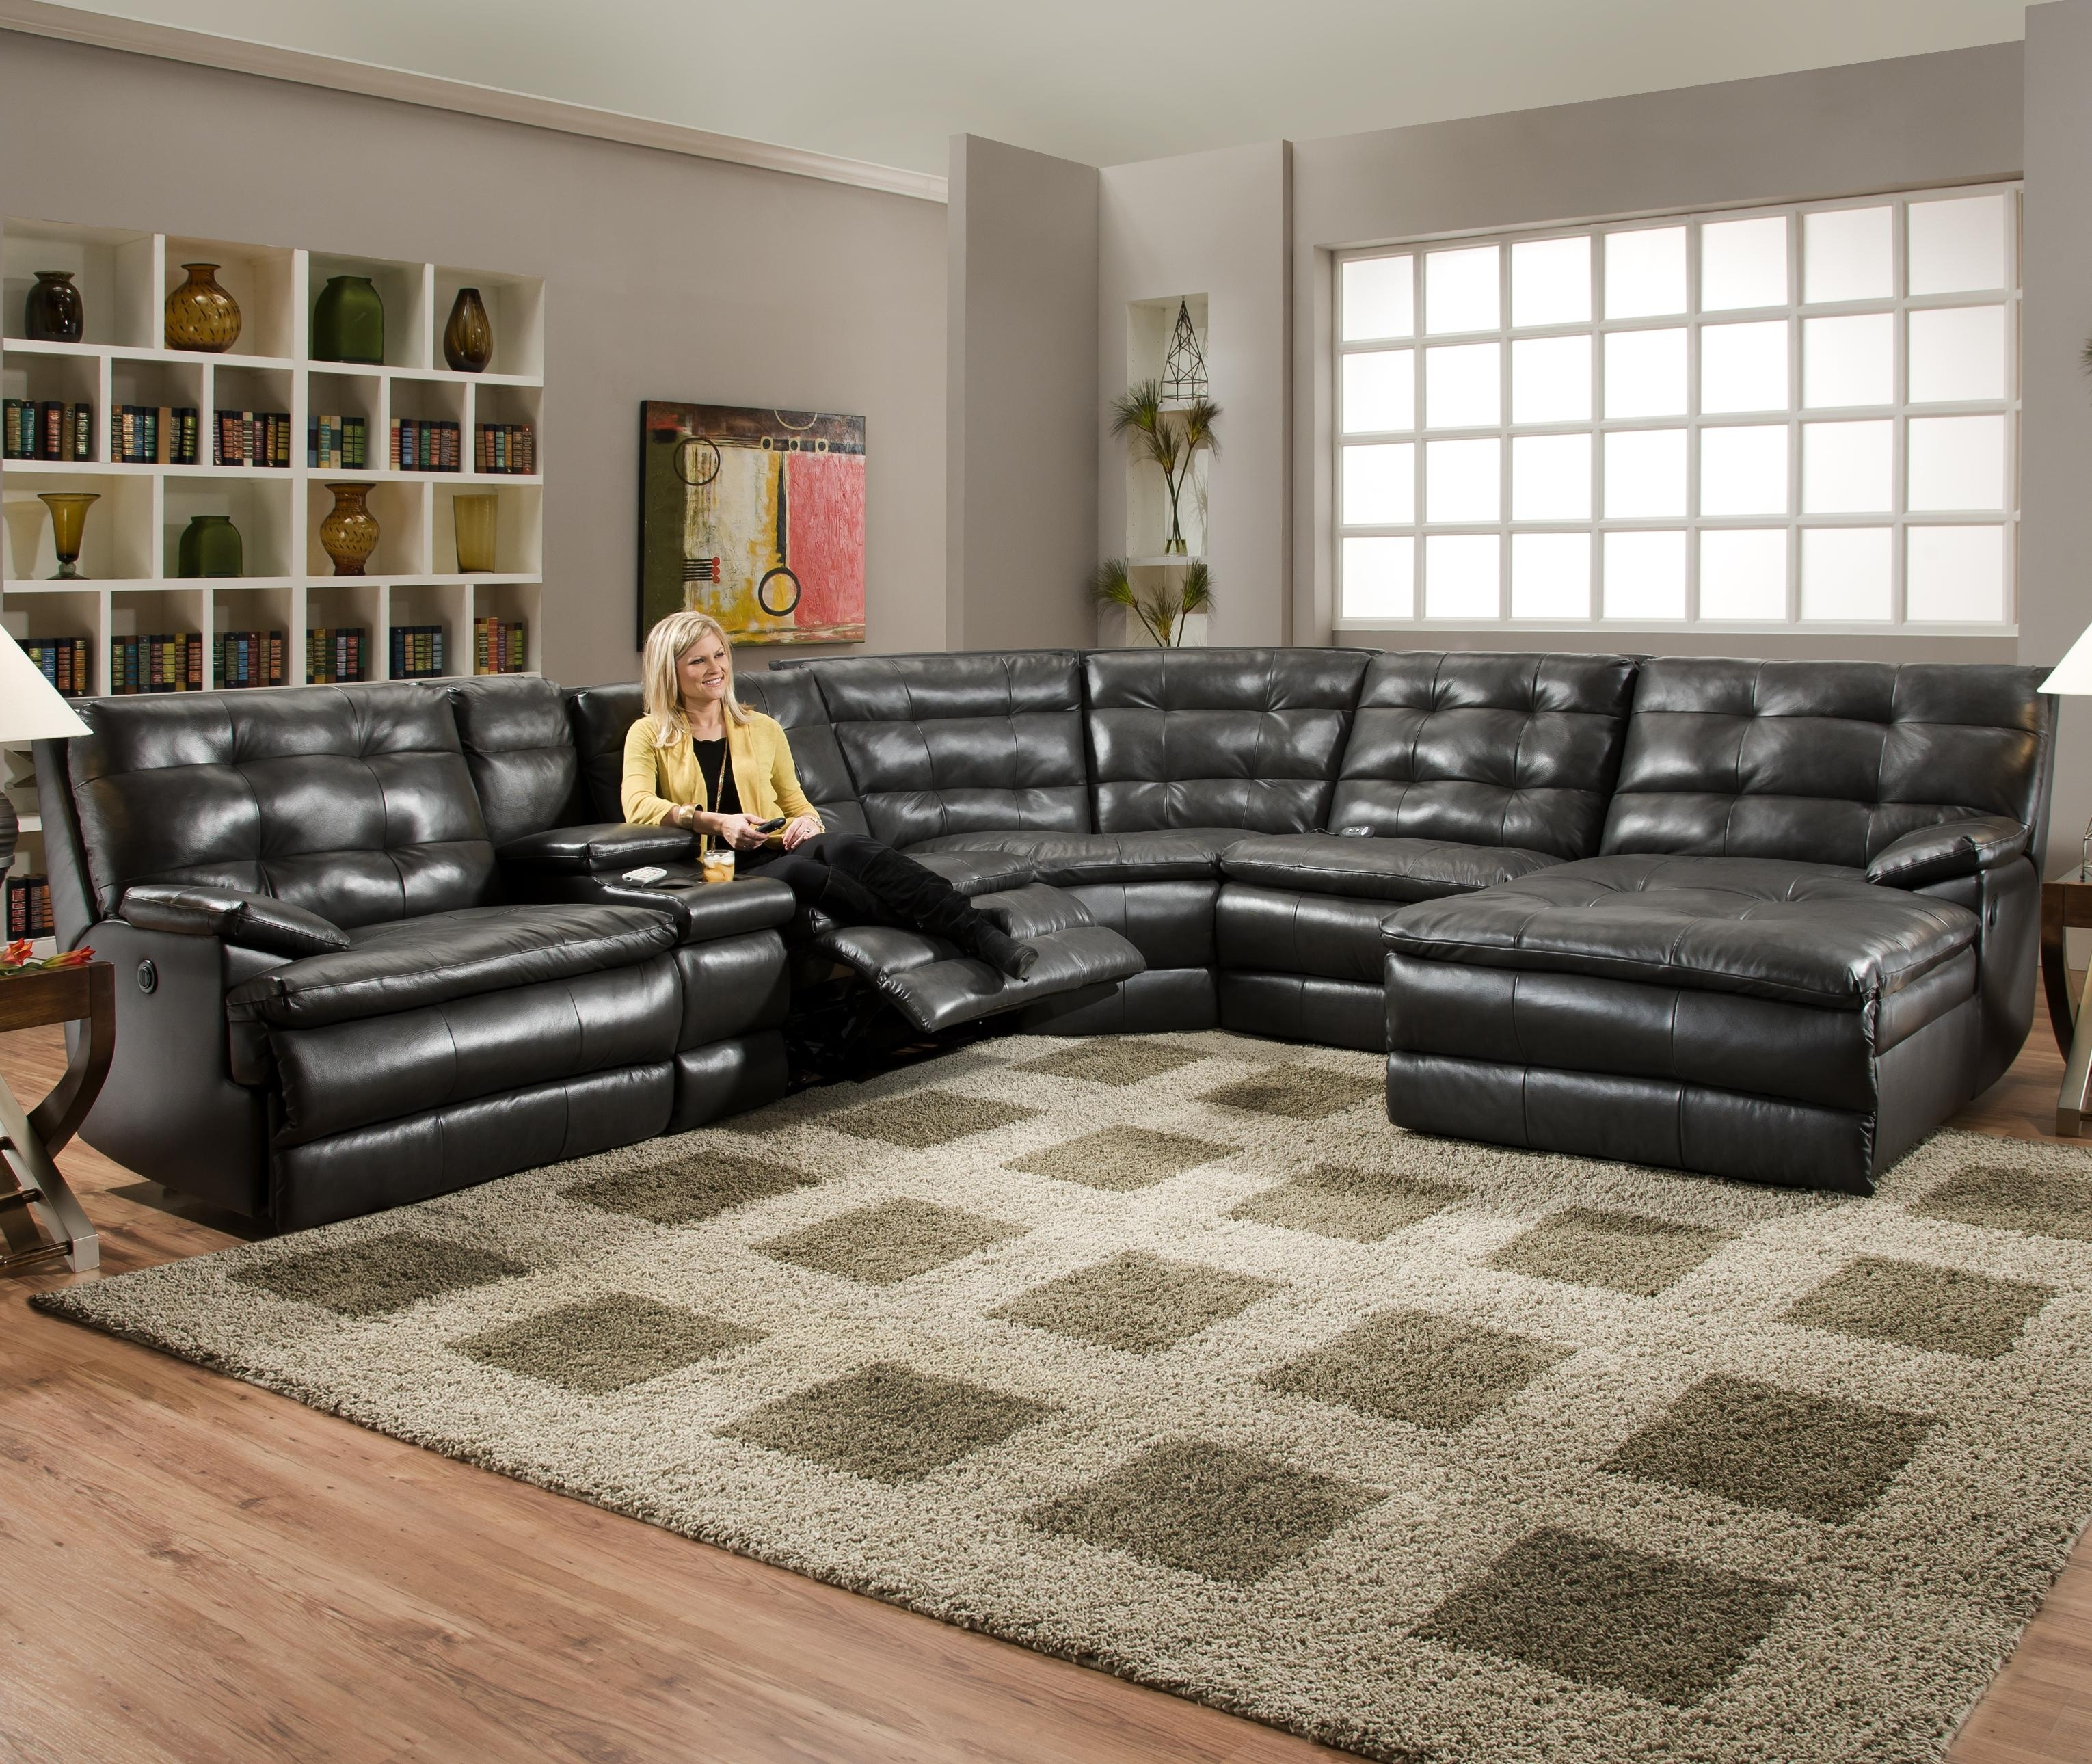 Luxurious Tufted Leather Sectional Sofa In Classy Black Color With regarding Reclining Sectional Sofas (Image 8 of 10)